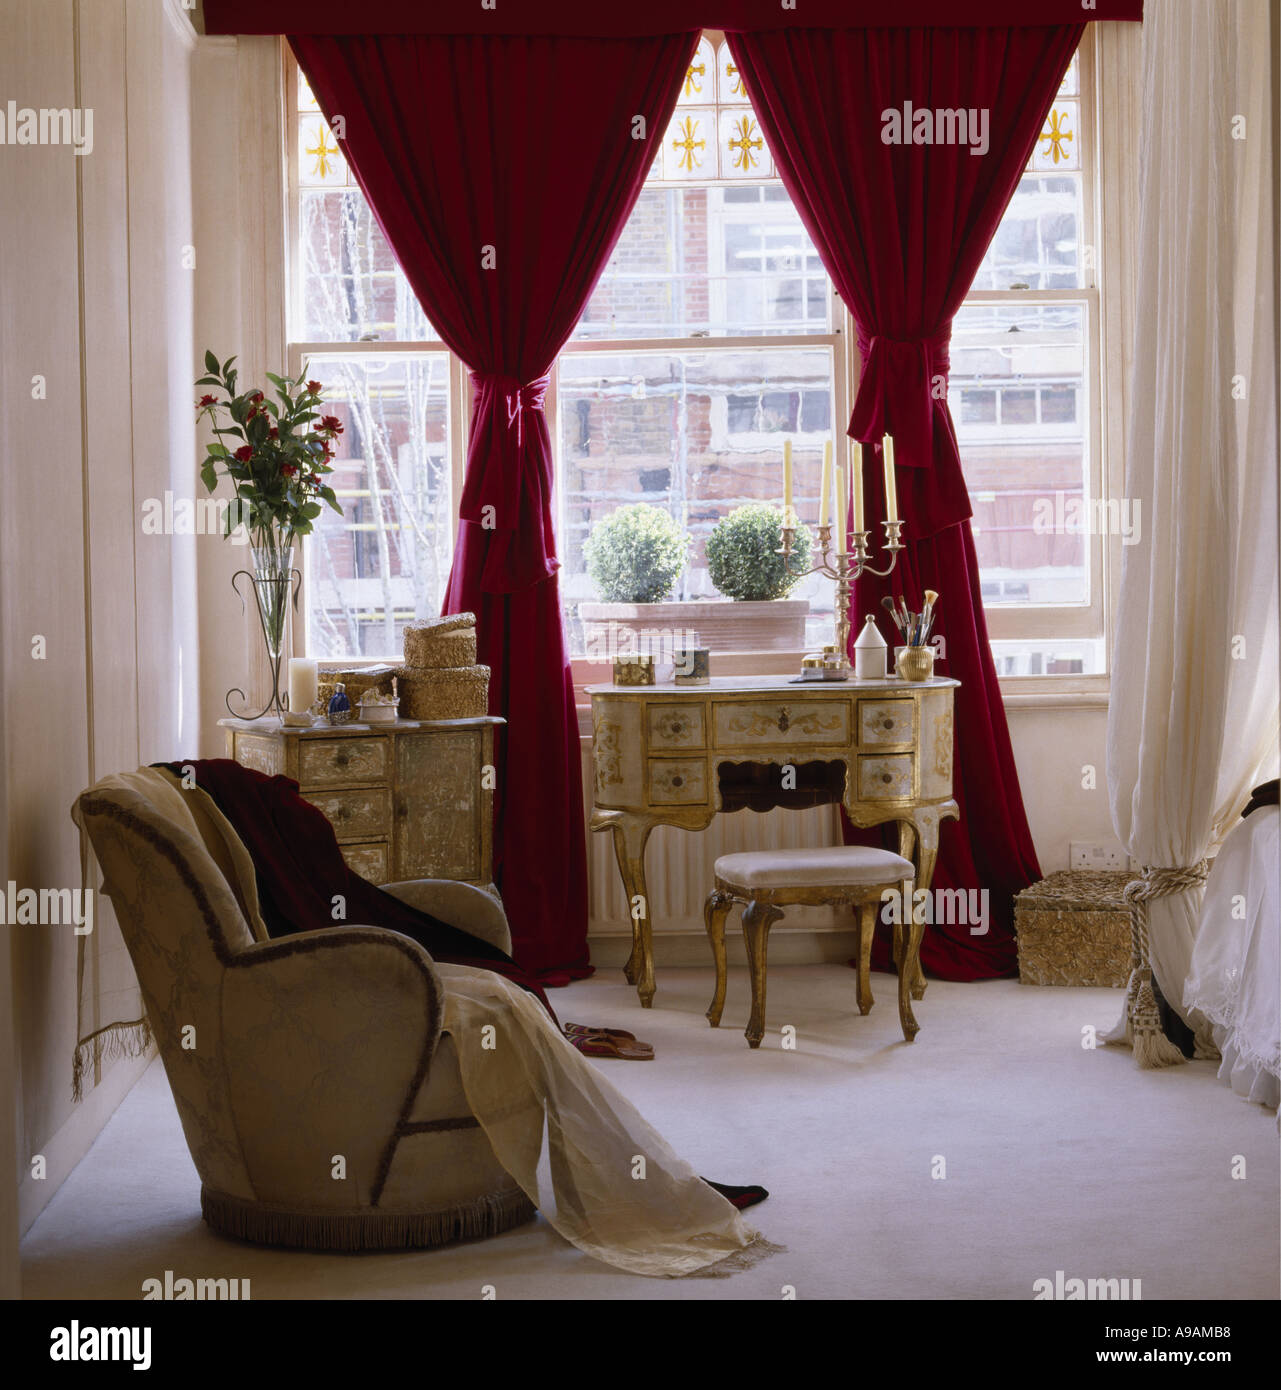 Bedroom With Red Curtains Stock Photo Alamy